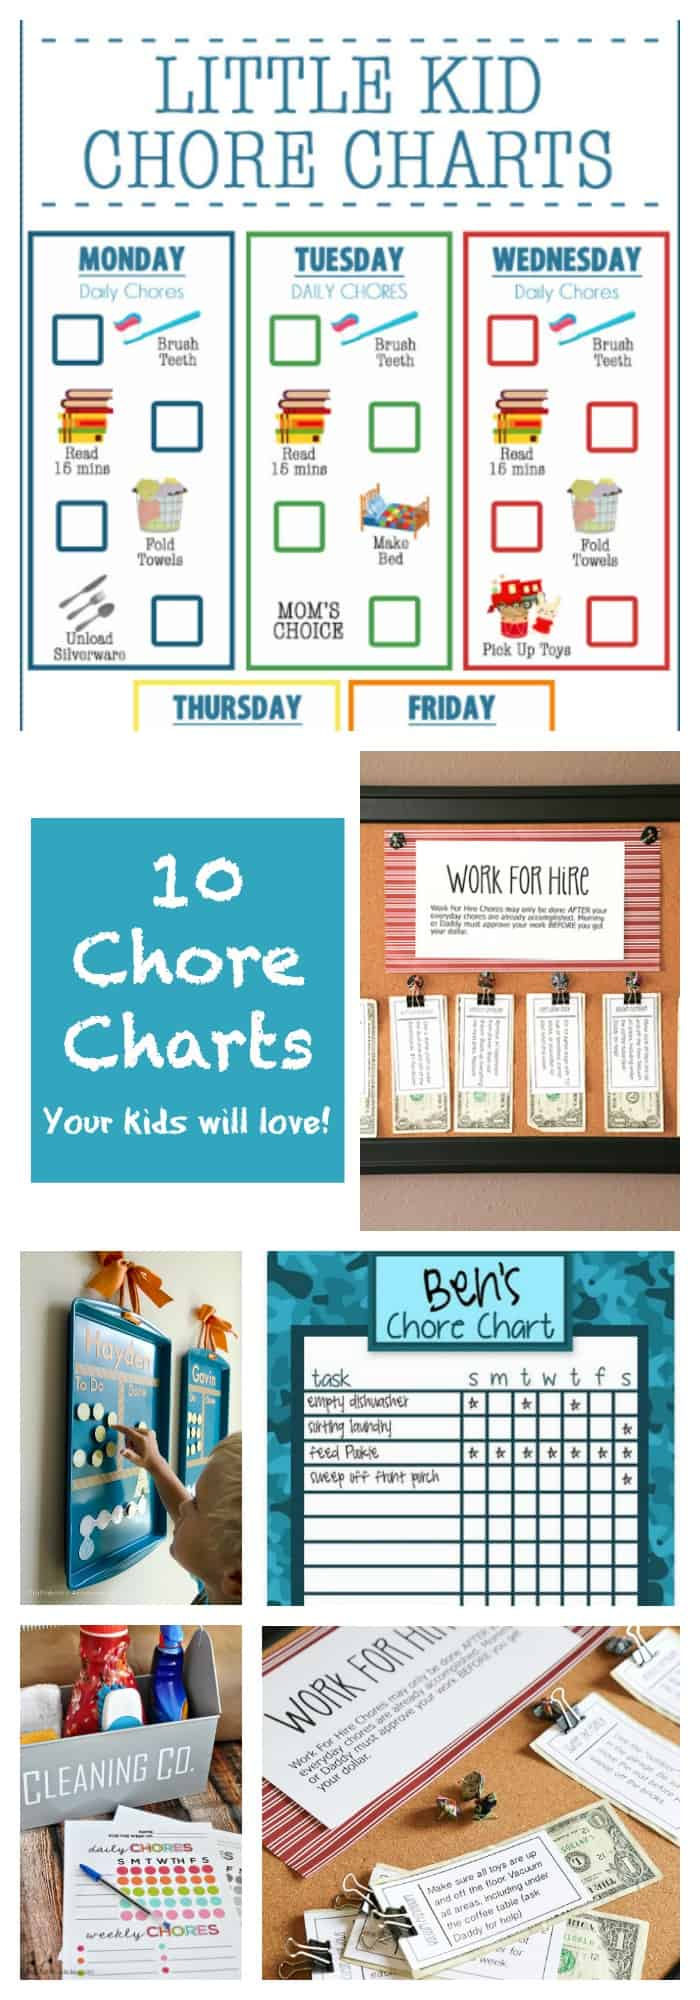 photo regarding Free Printable Chore Cards identified as 10 Printable Chore Charts Your Small children Will Really like! - The